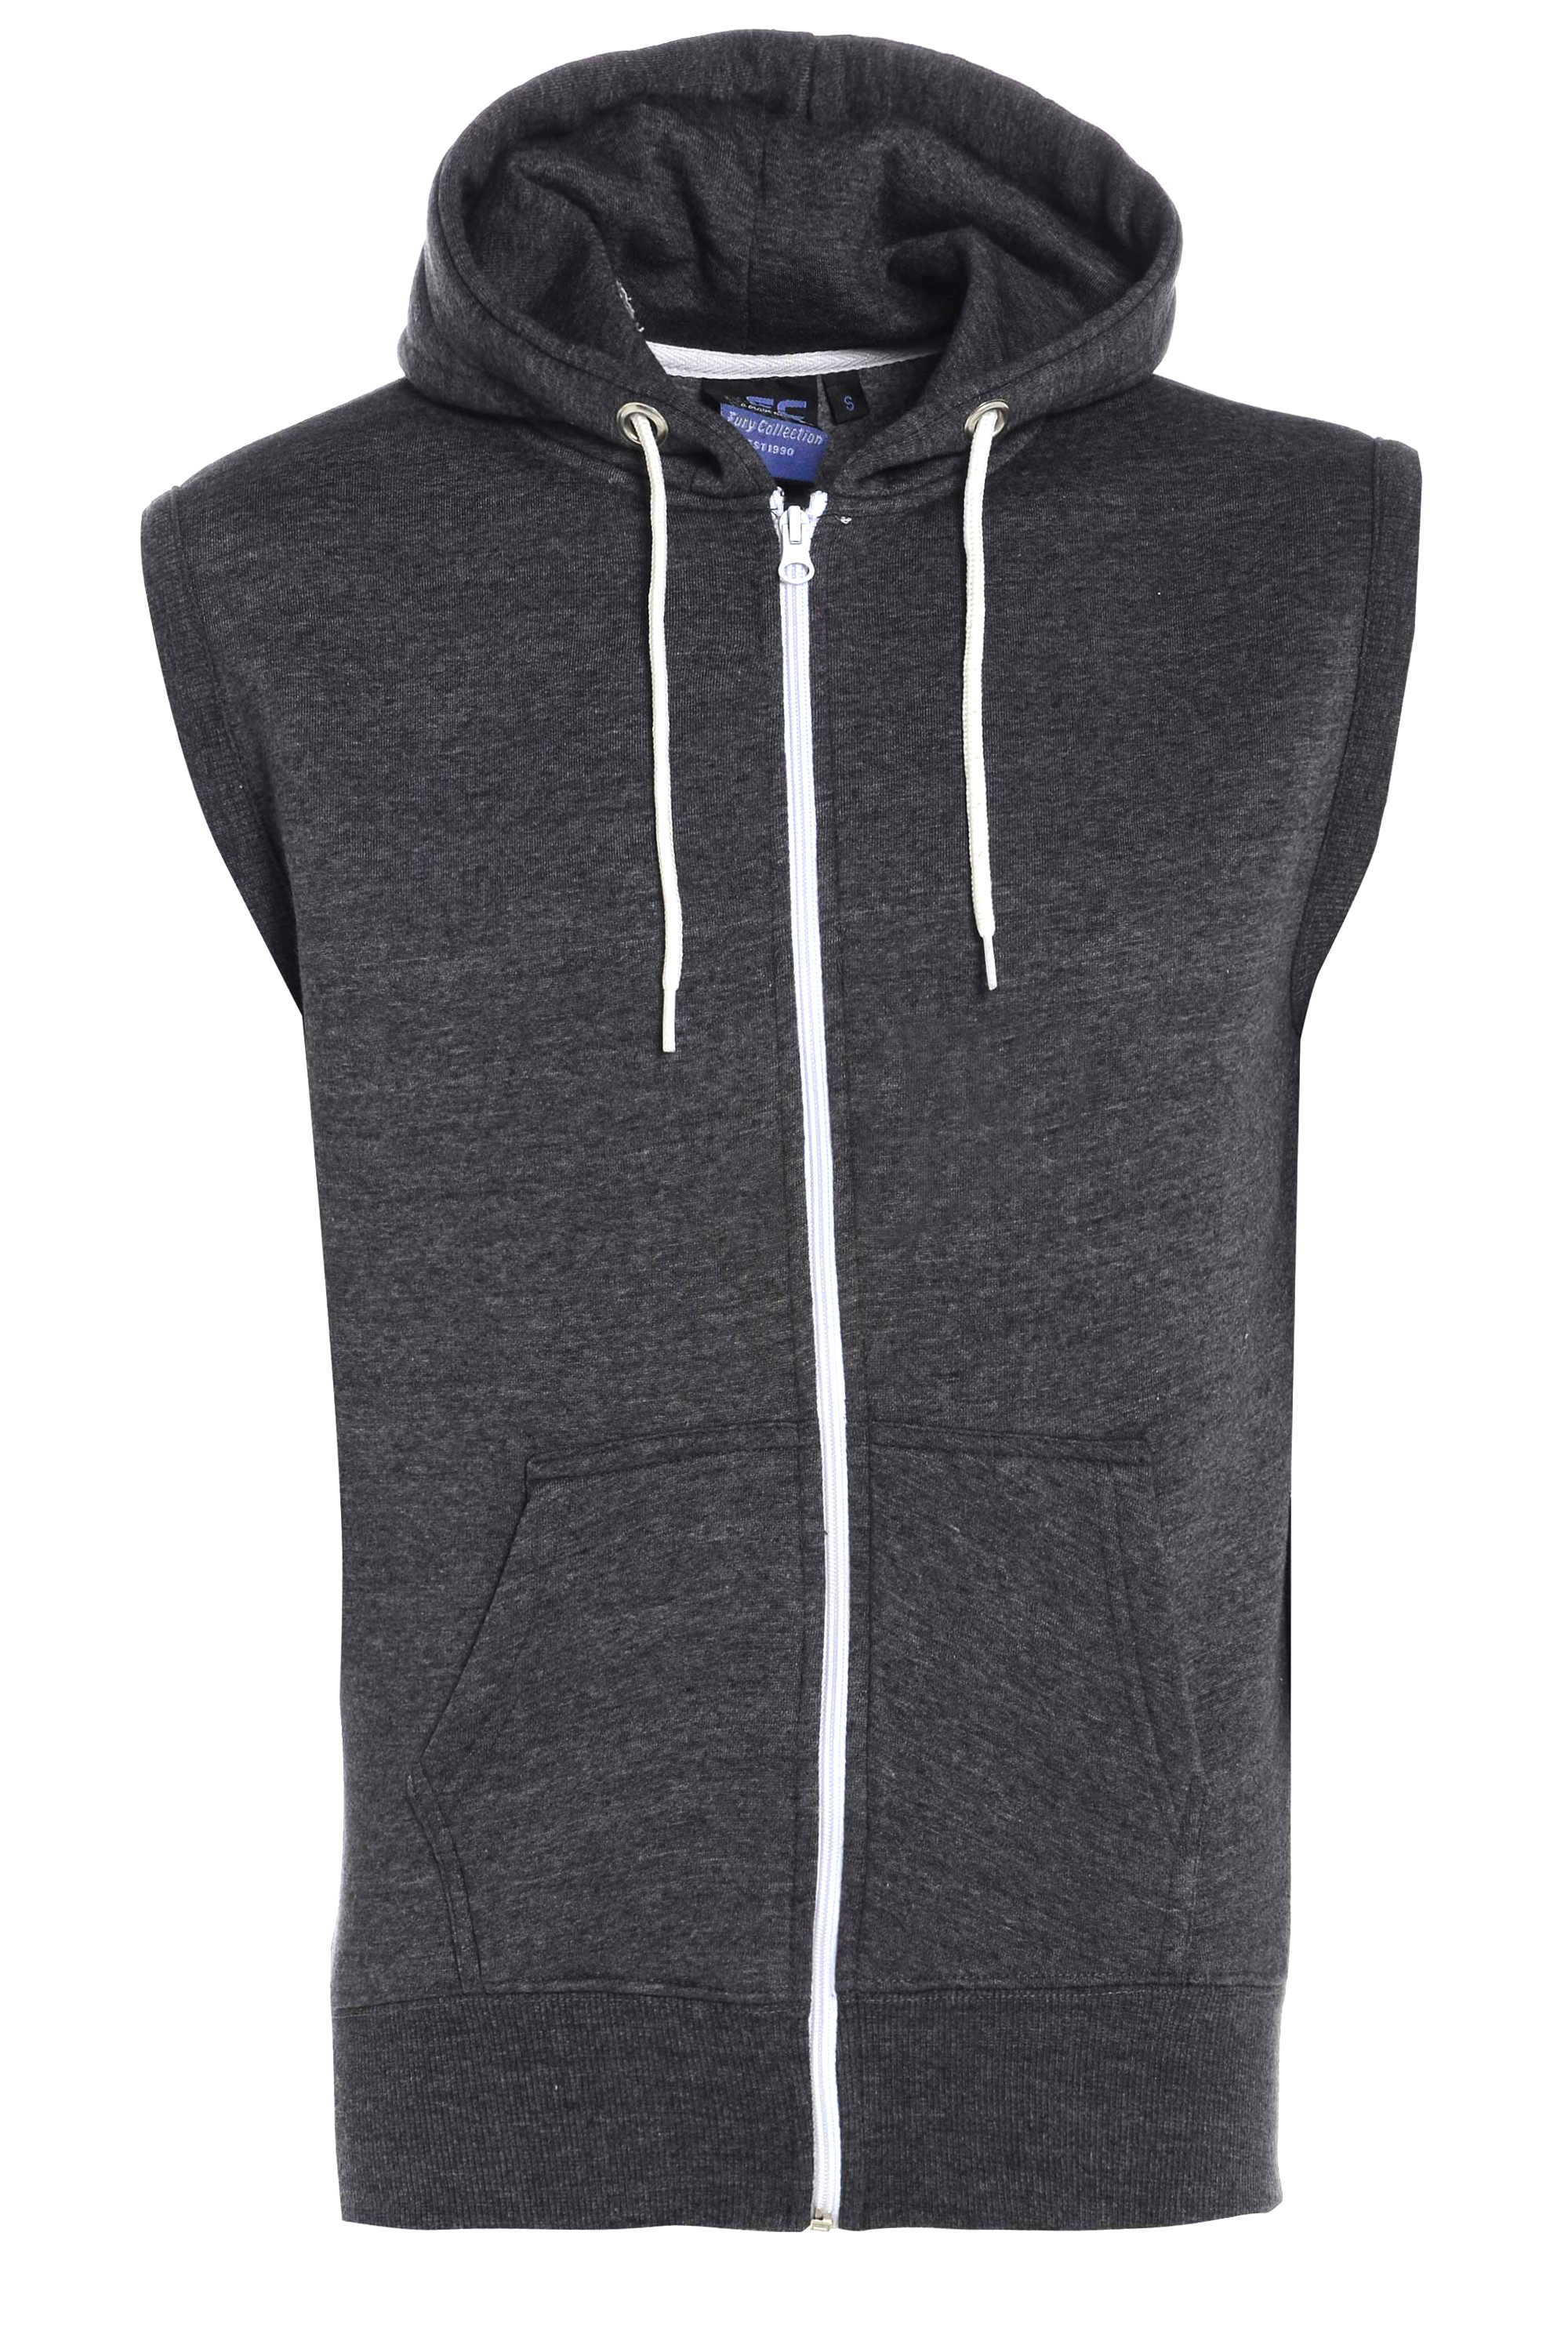 Find great deals on eBay for boy gilet. Shop with confidence.